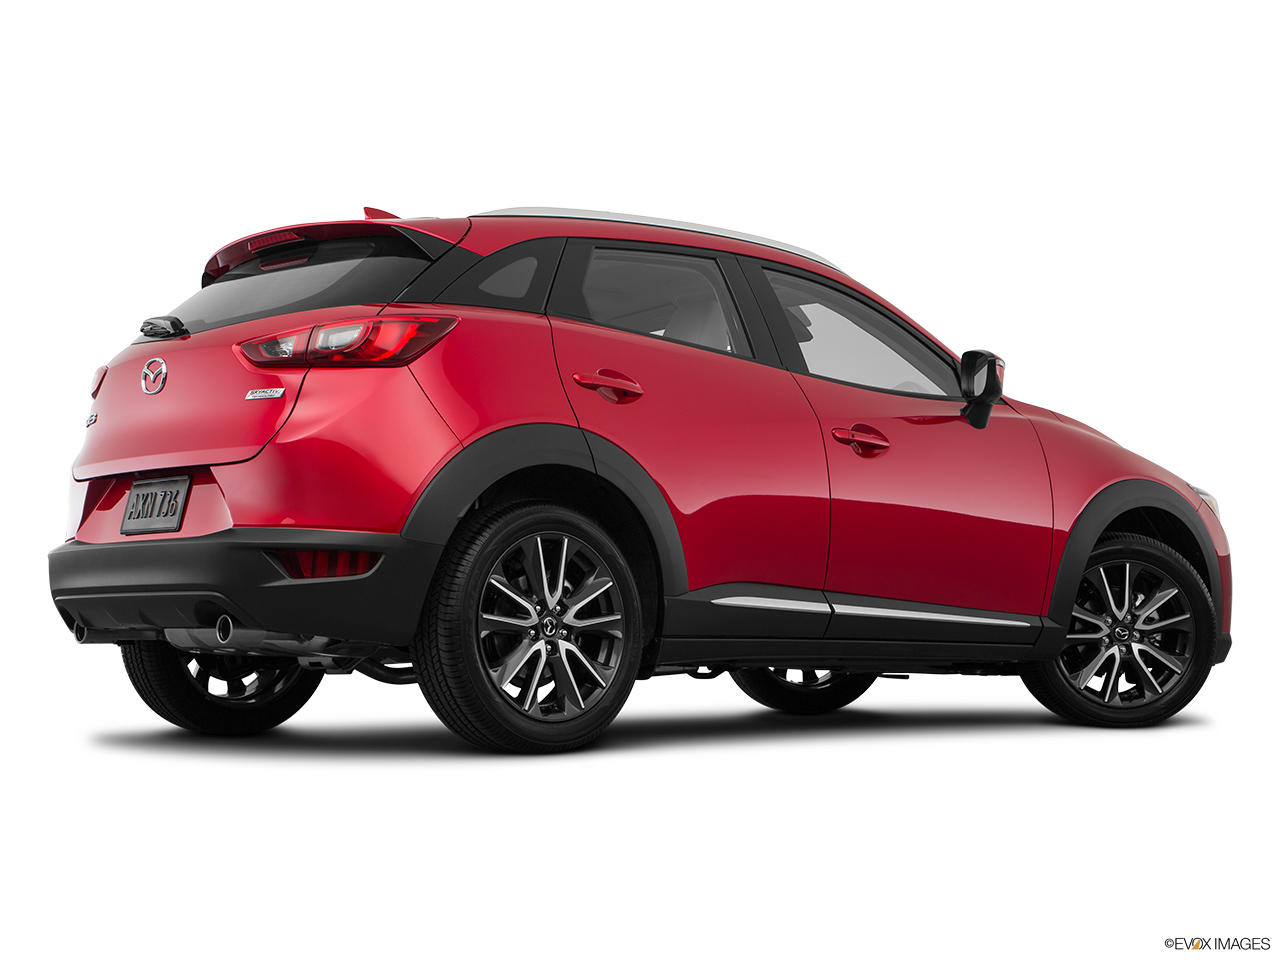 Awd Cars List: Car Pictures List For Mazda CX 3 2018 2.0L Luxury AWD